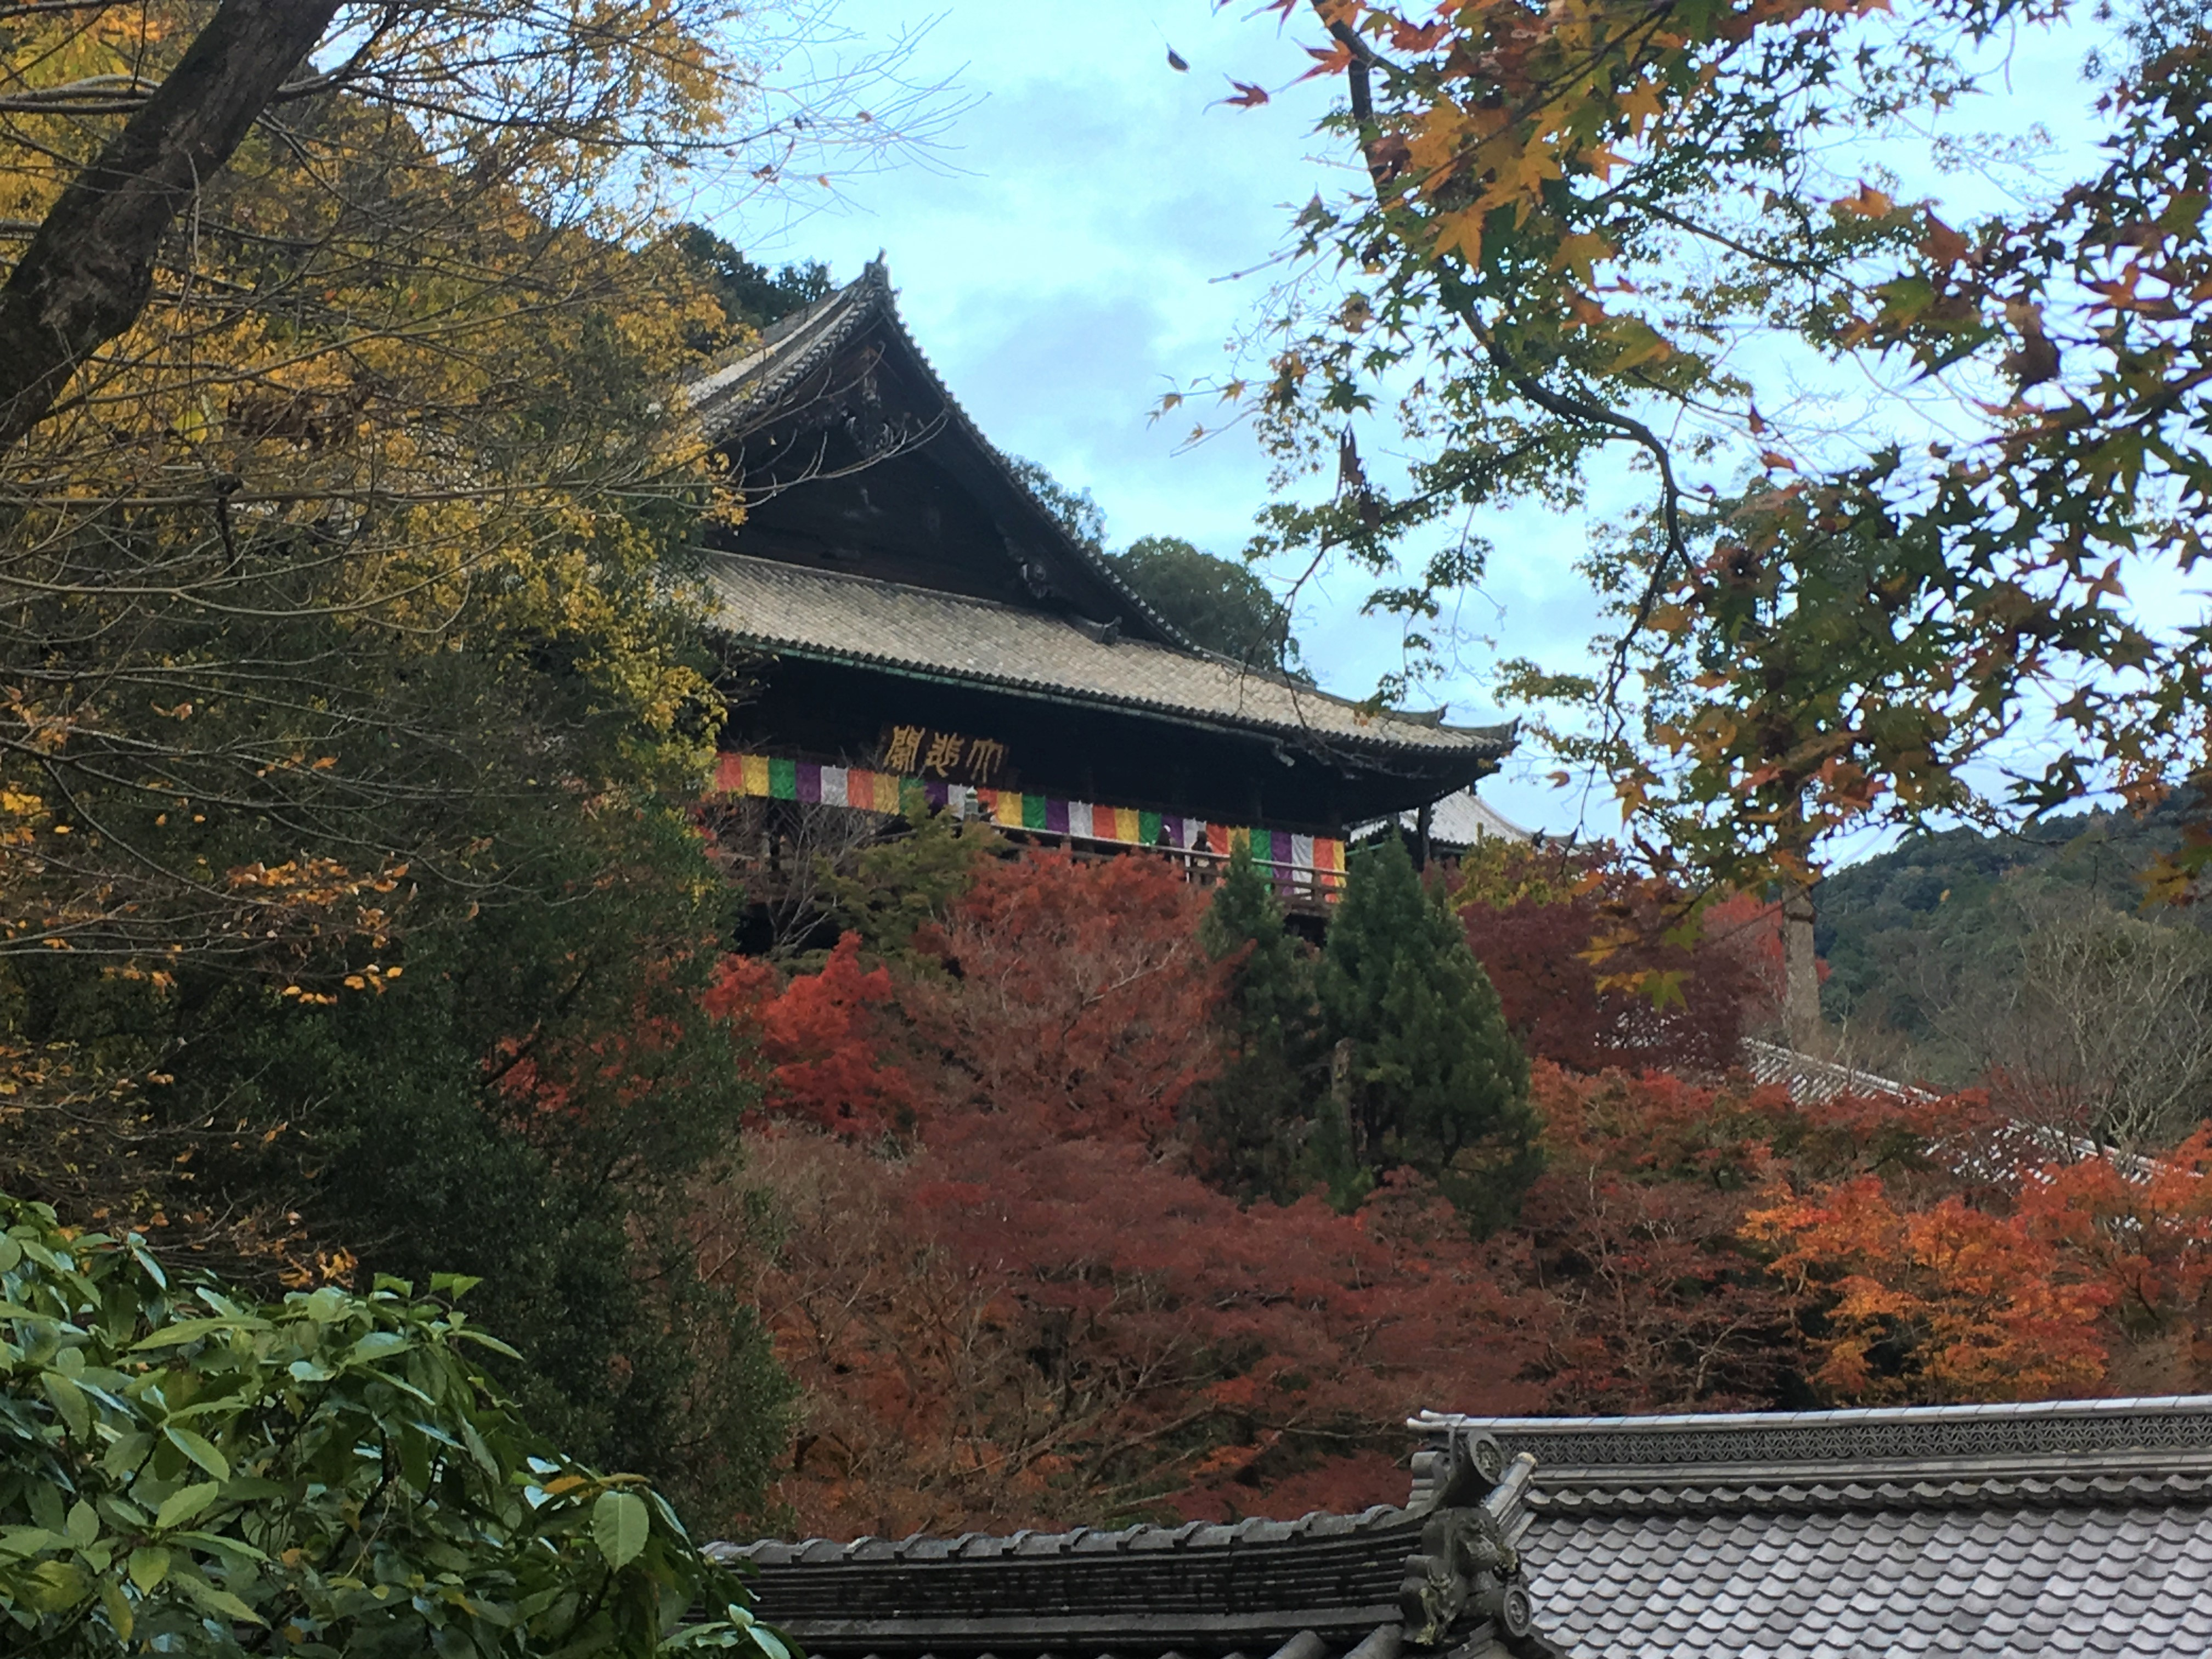 Hase-dera temple surrounded by autumn foliage